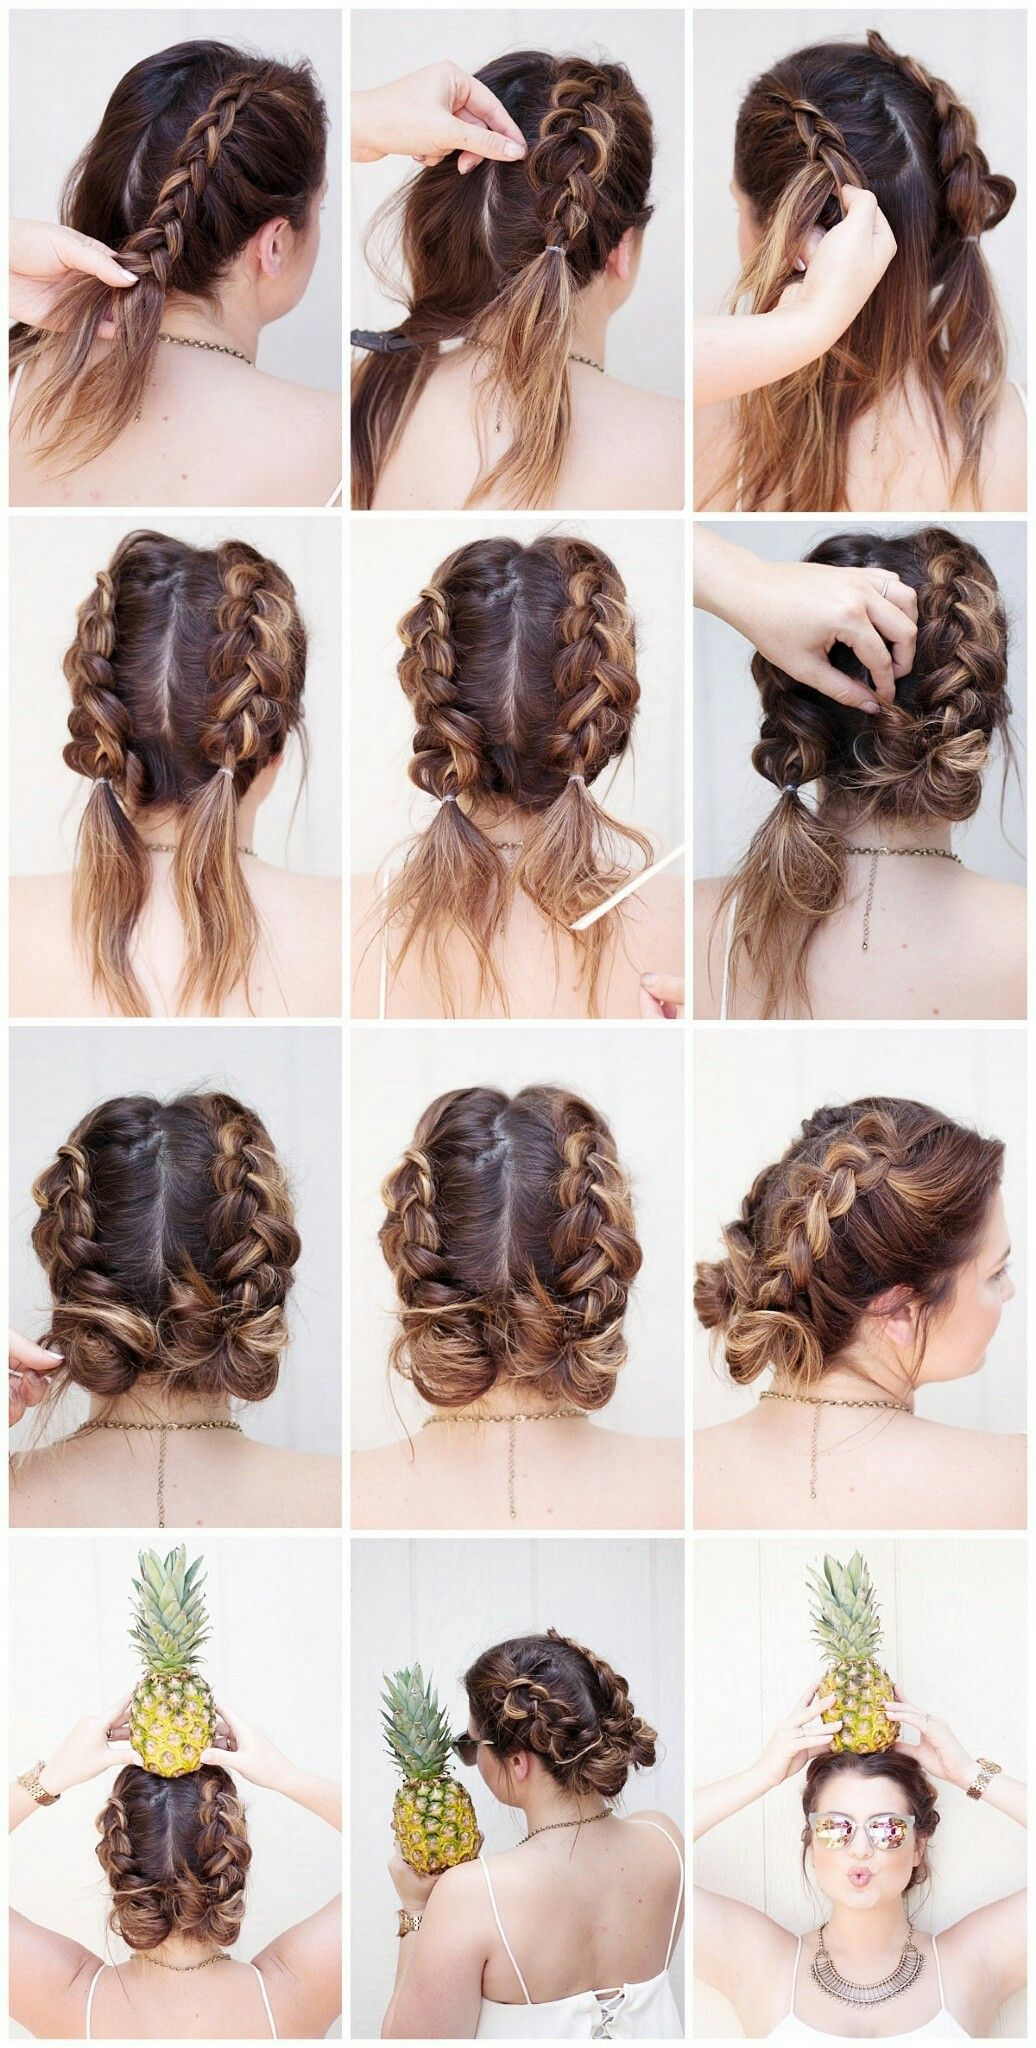 Pin by candy cordero on hairstyles pinterest hair style makeup